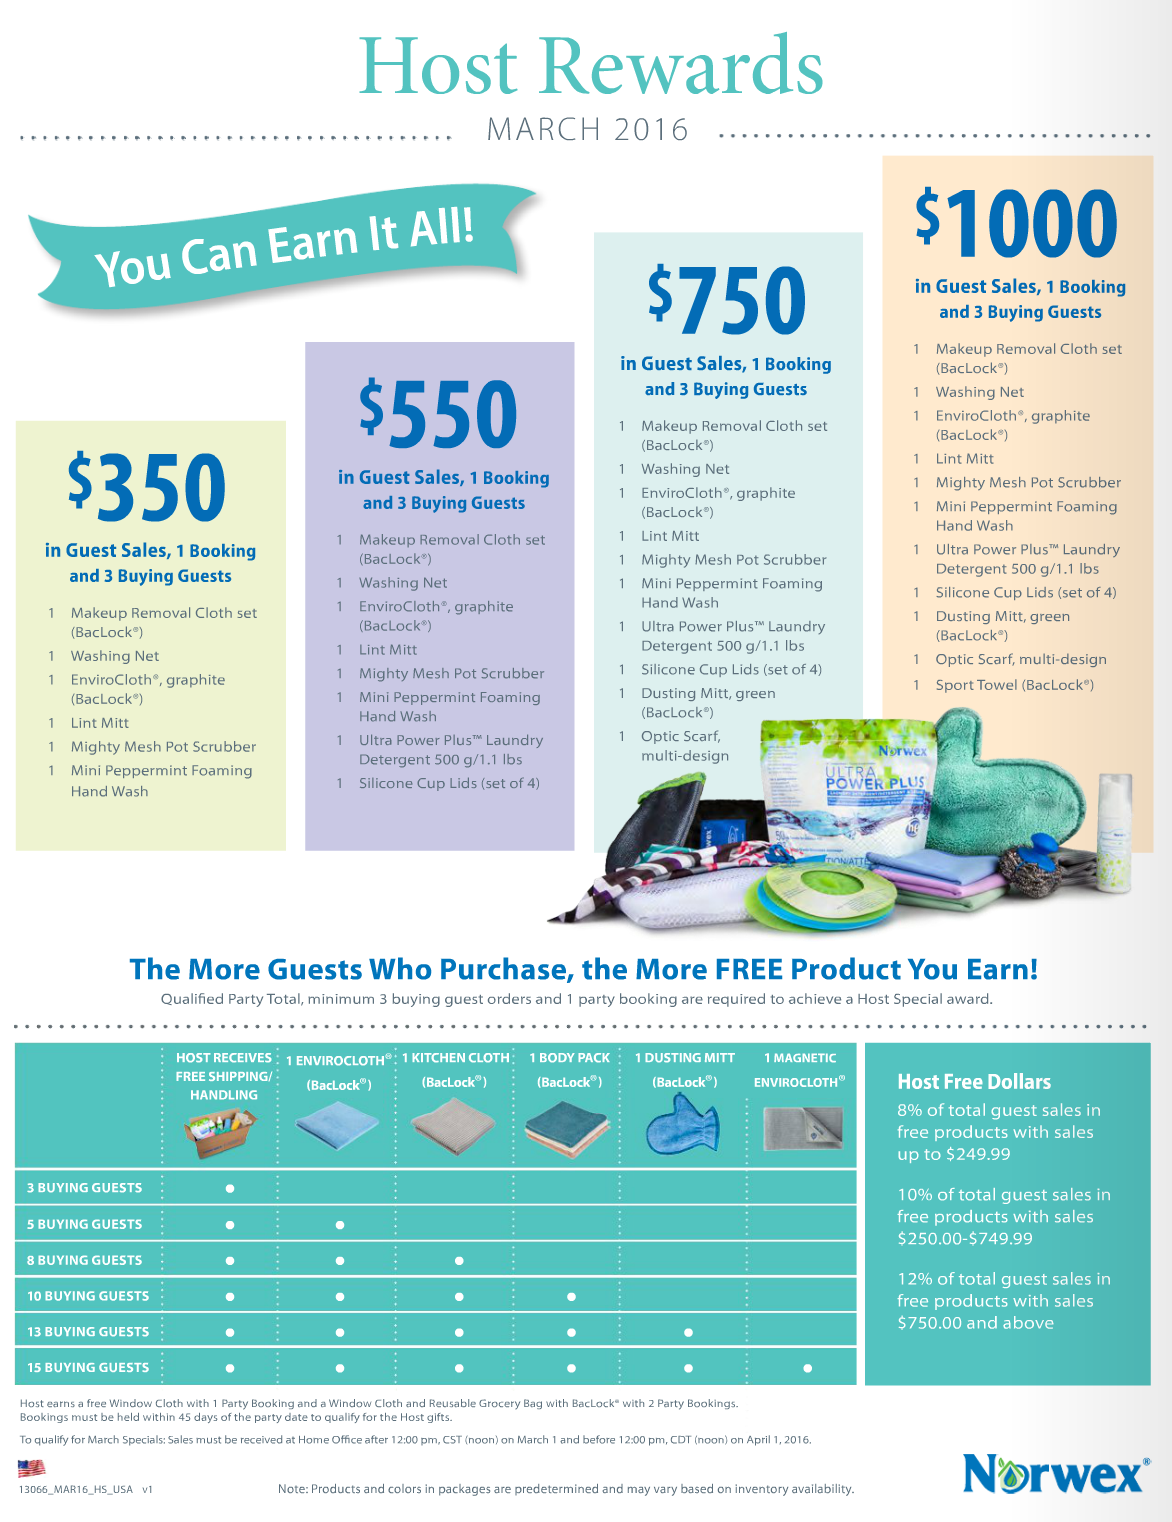 Norwex Hostess Specials for March